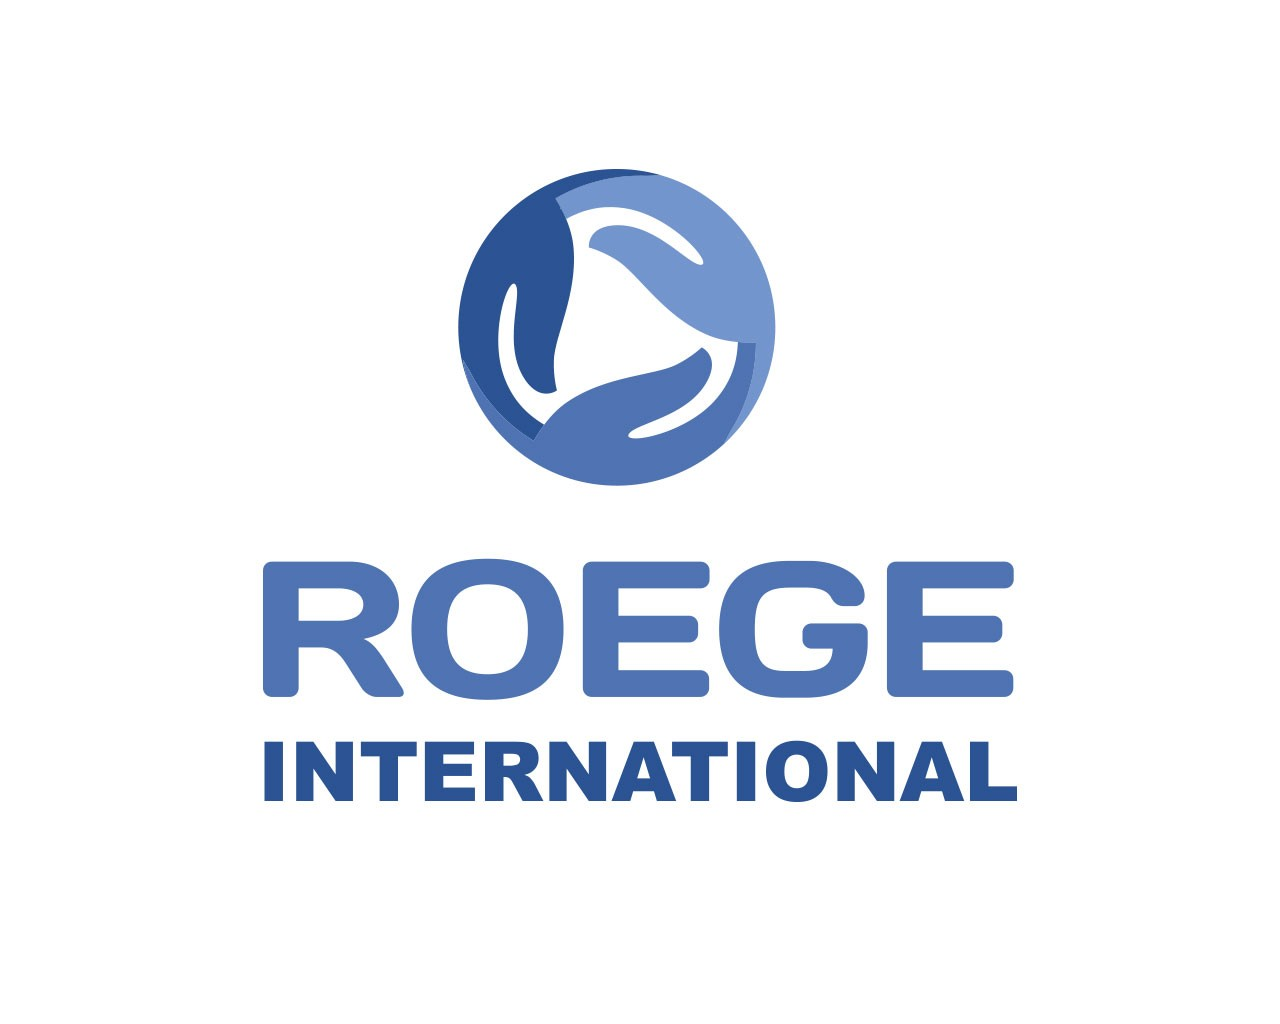 Roege international